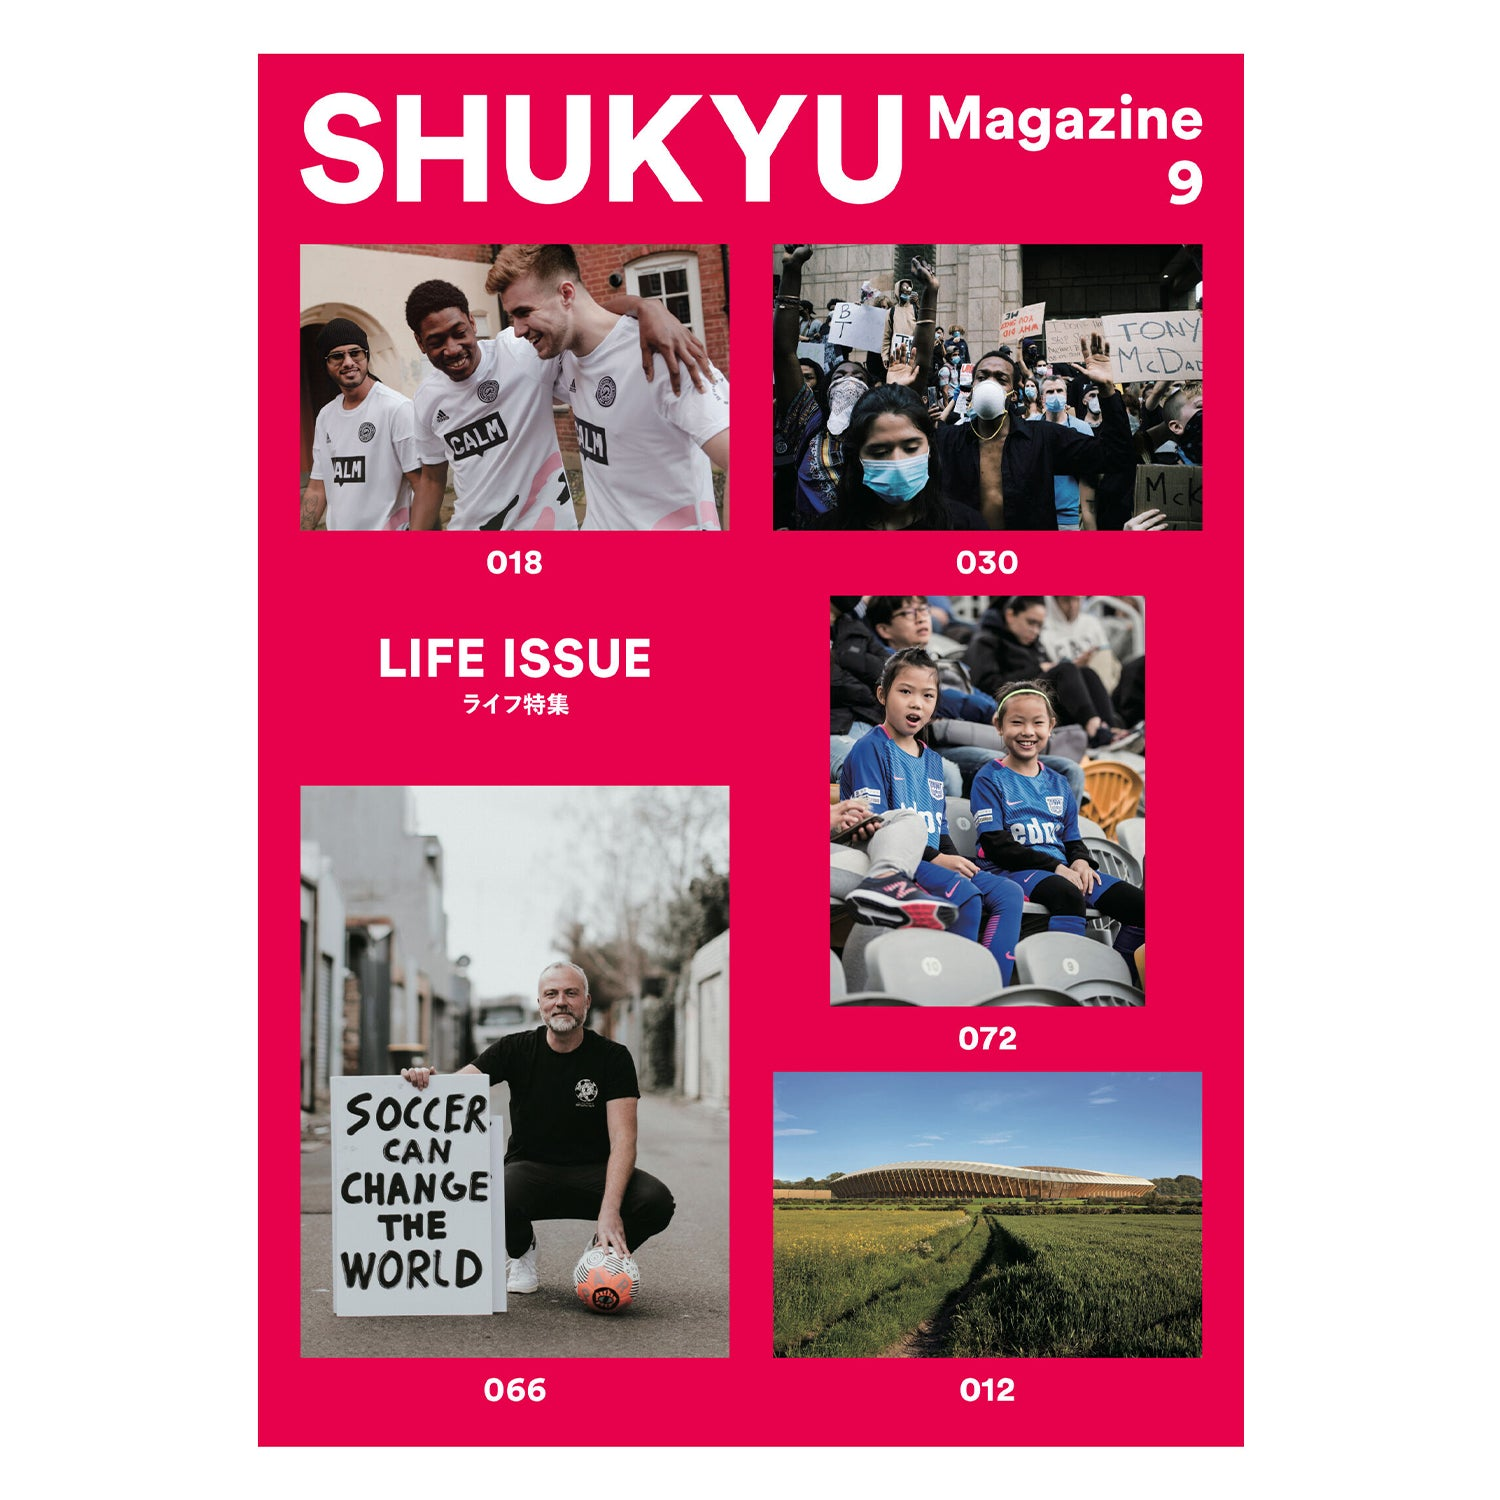 Shukyu Magazine: Life Issue (Issue 9)